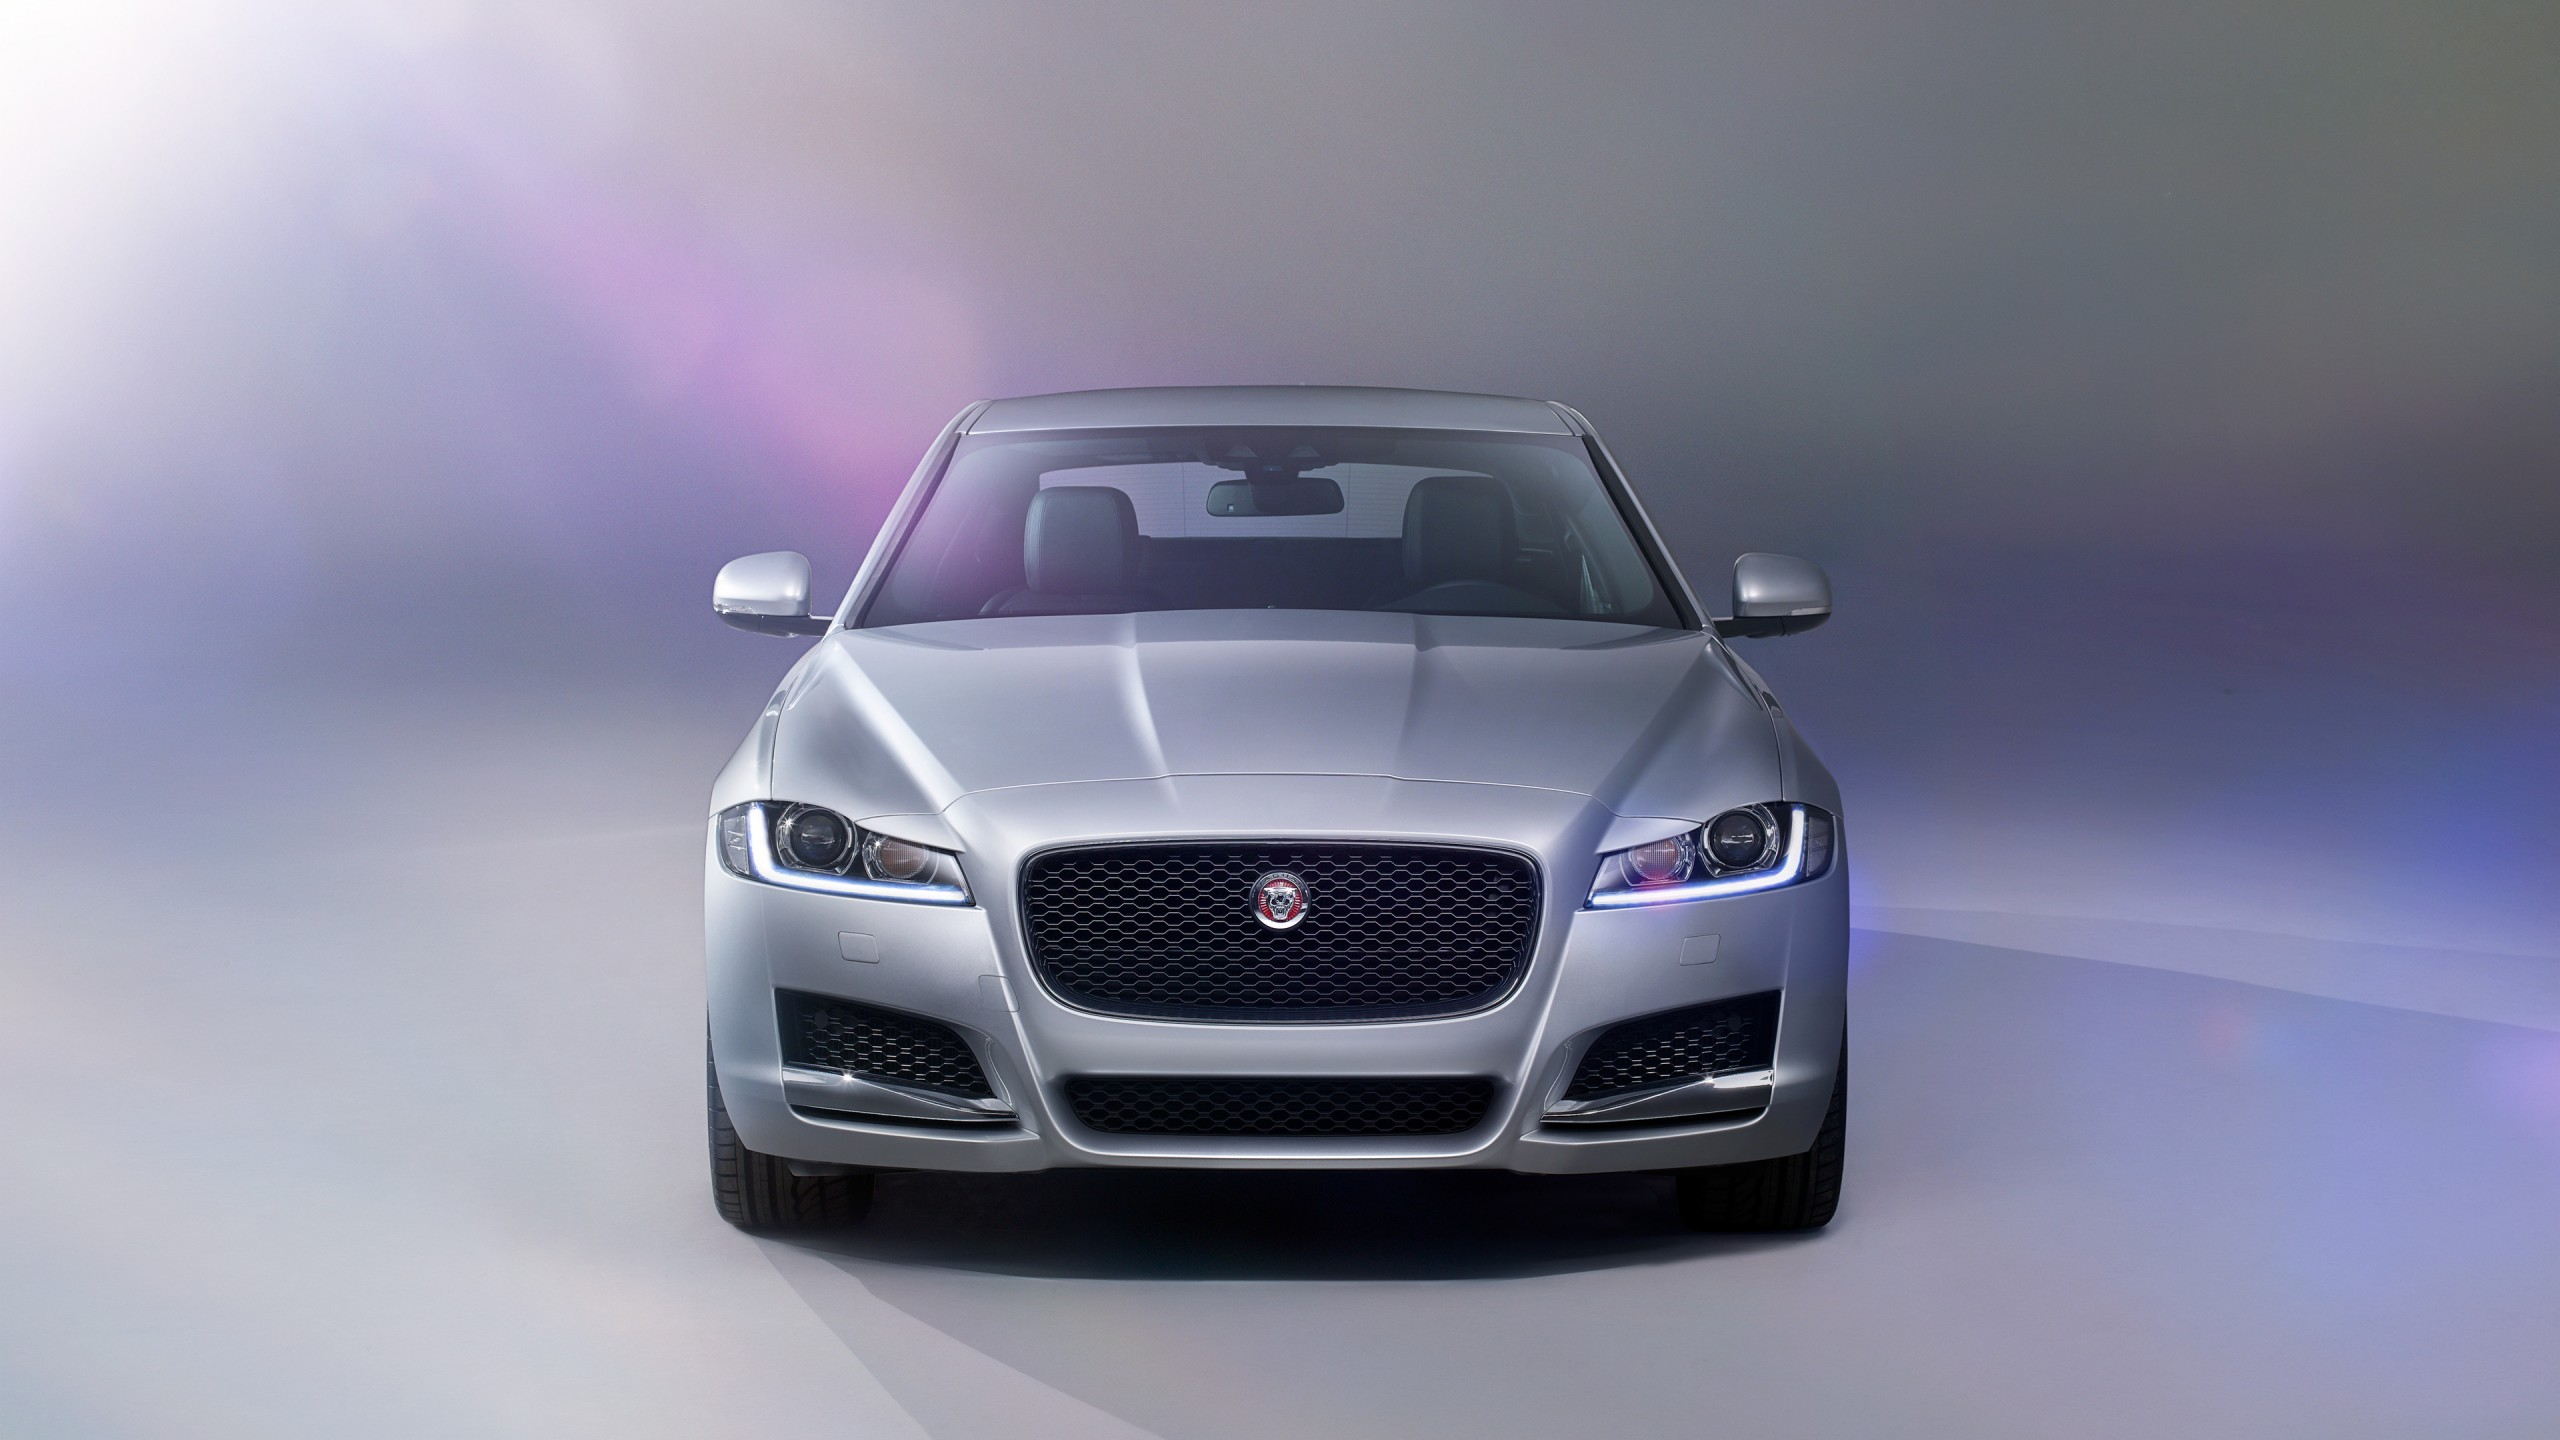 2015 jaguar xf prestige wallpaper hd car wallpapers id. Black Bedroom Furniture Sets. Home Design Ideas